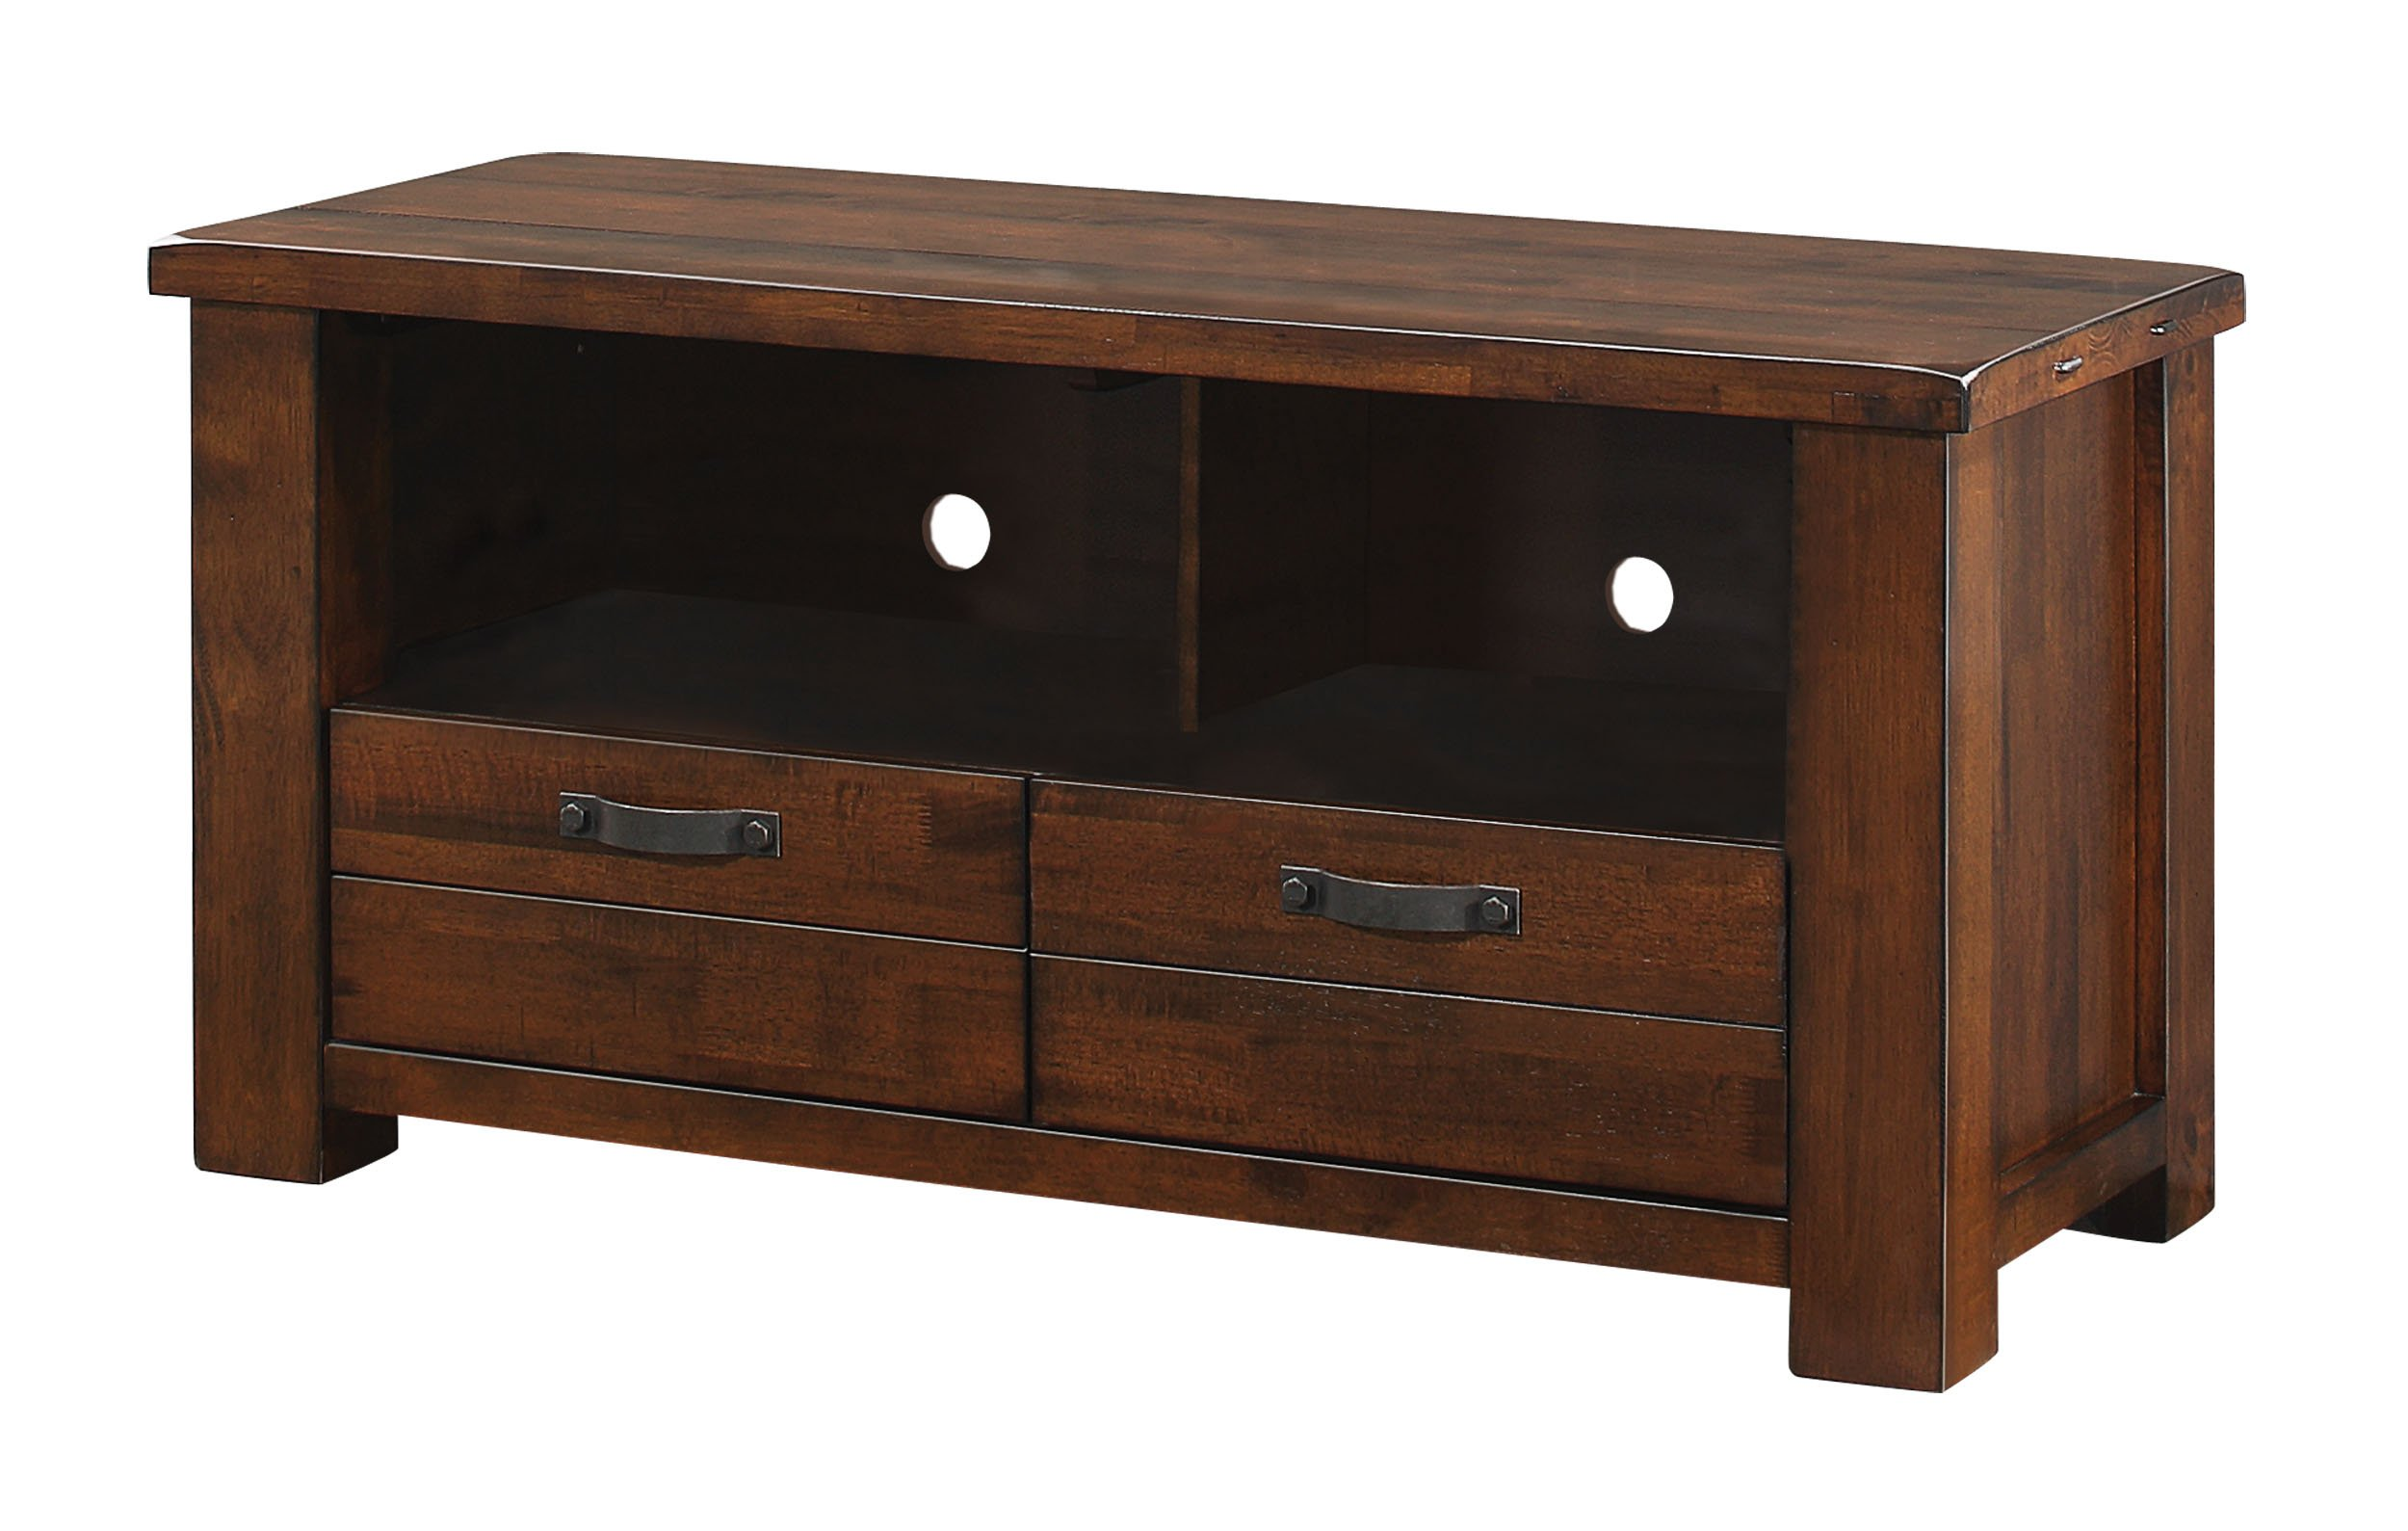 Homelegance 48'' TV Stand Entertainment Center with Open Shelves and Drawers, Brown